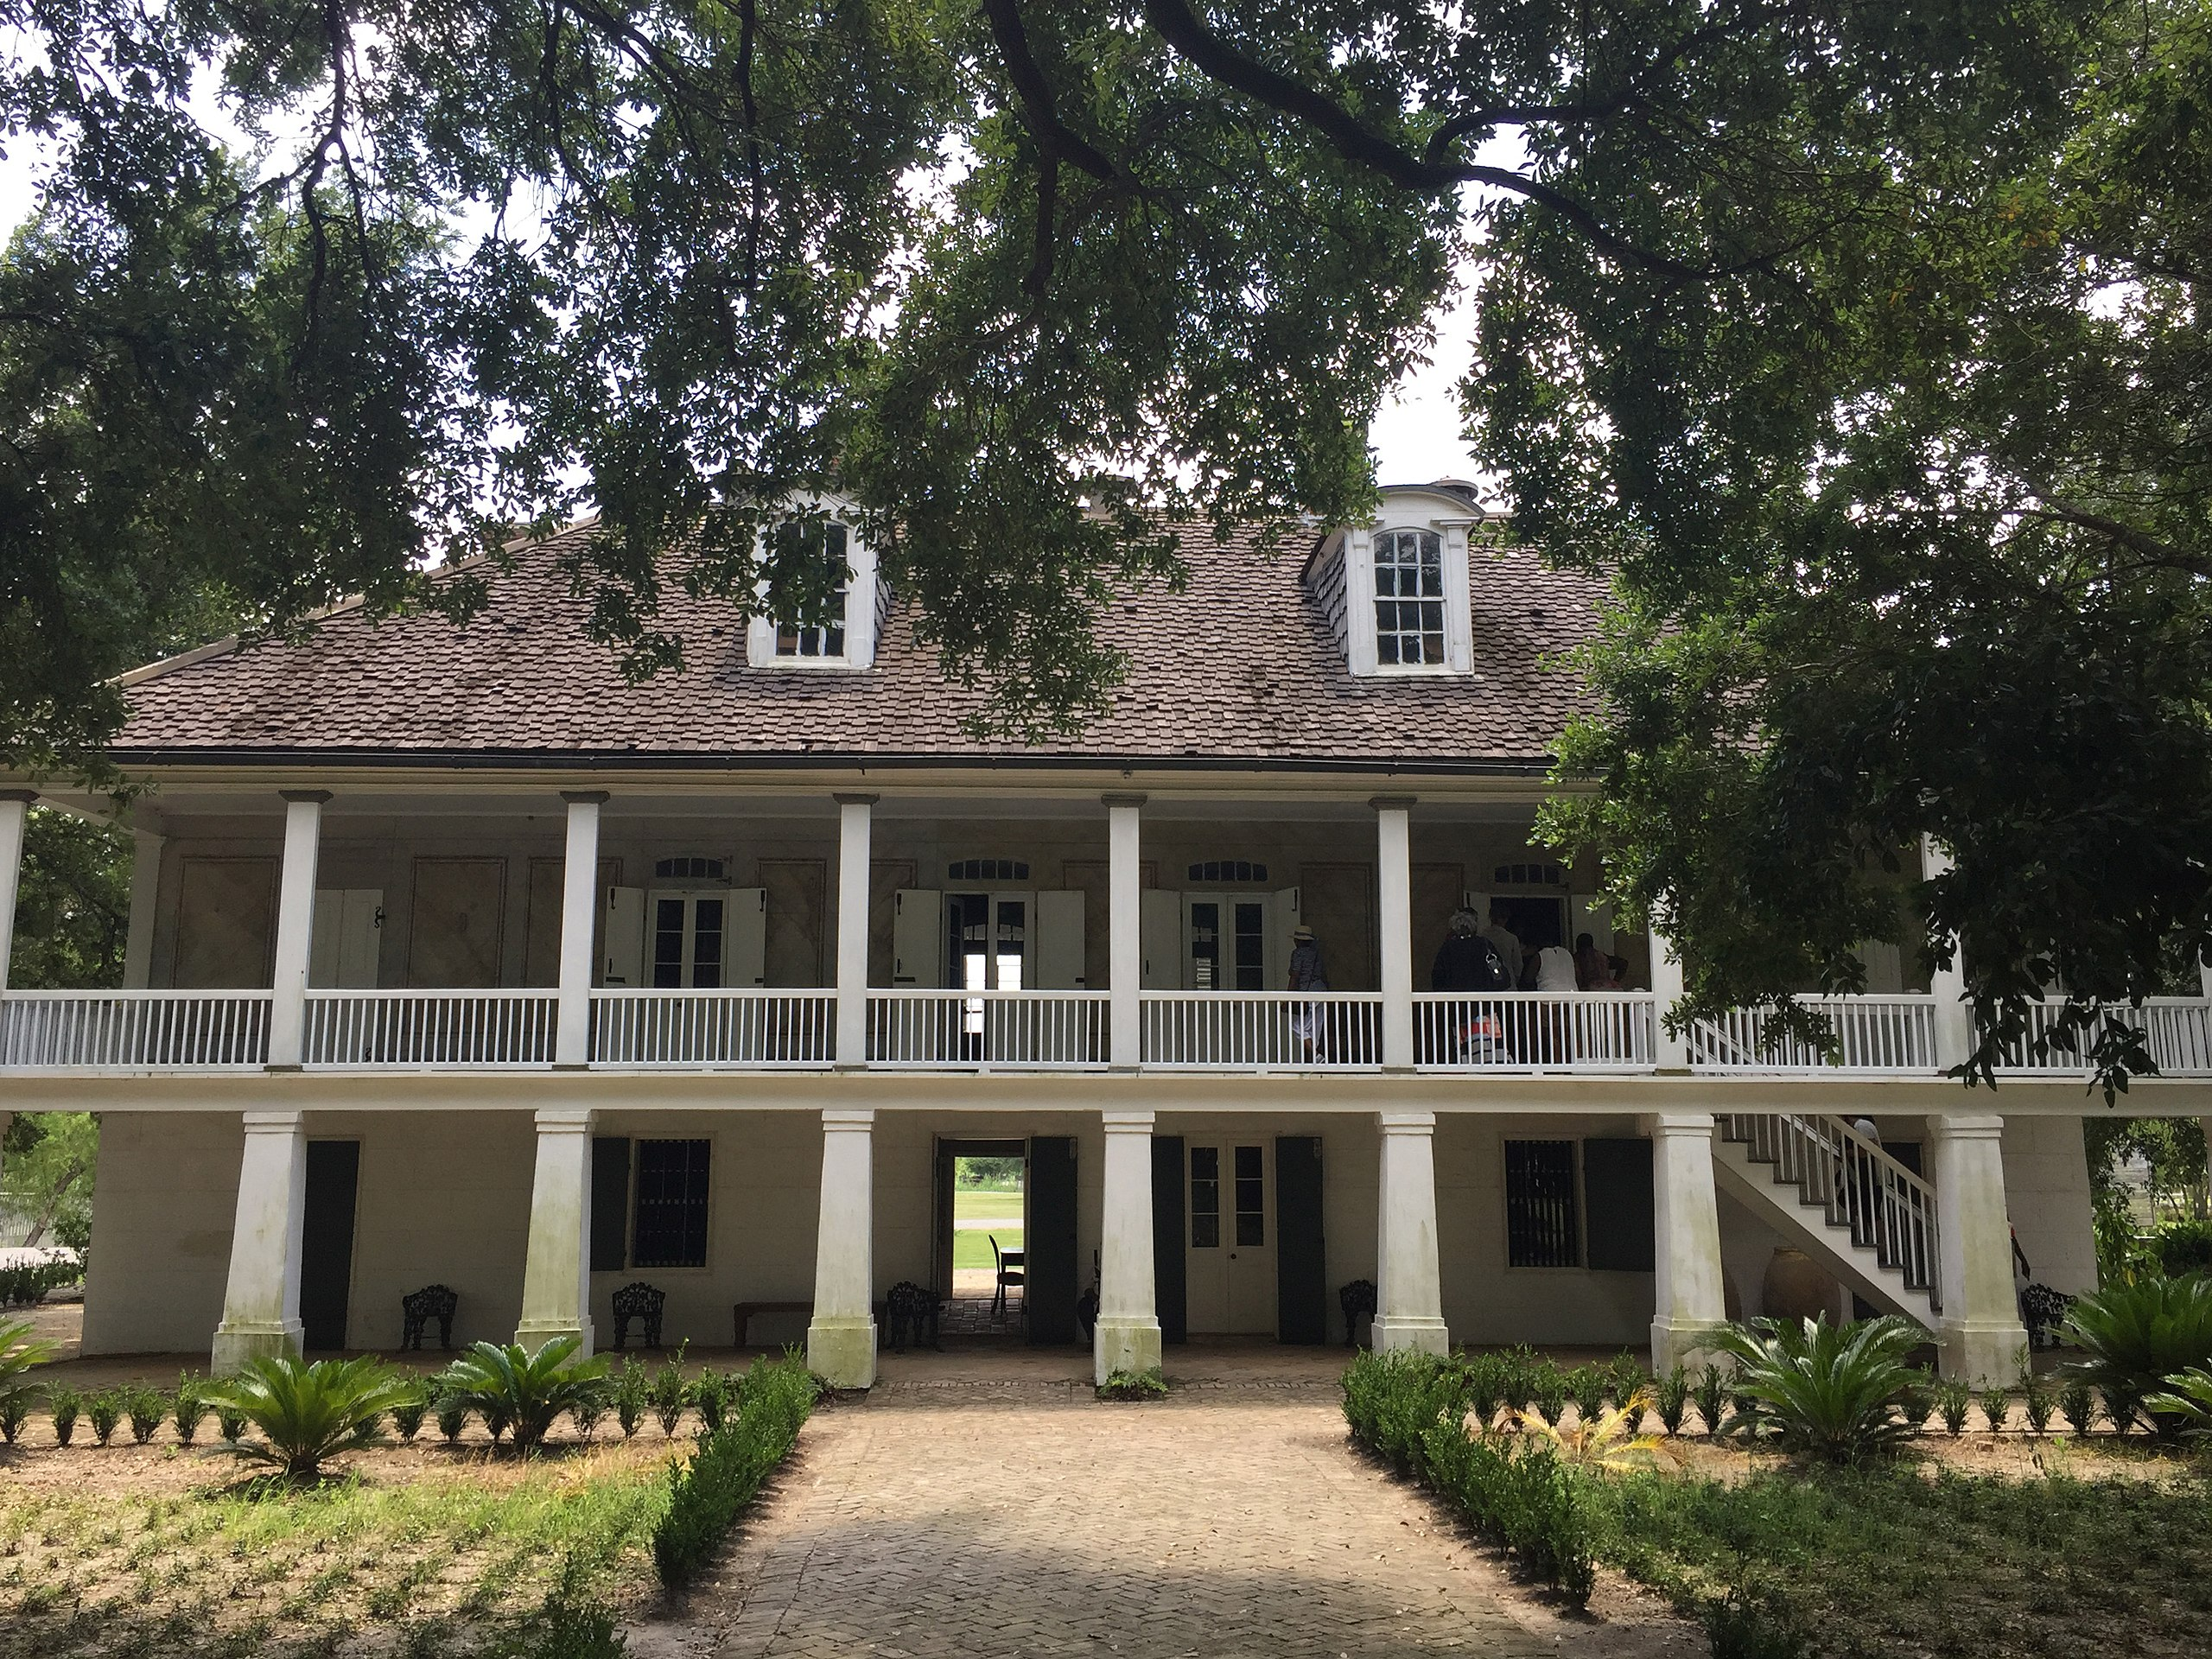 The Whitney Plantation Historic District is on the National Register of Historic Places. Whitney Plantation is a genuine landmark built by African slaves and their descendants. As a site of memory and consciousness, the Whitney Plantation Museum is meant to pay homage to all slaves on the plantation itself and to all of those who lived elsewhere in the US South. Photo by Bill Leiser. Source: Wikimedia Commons.